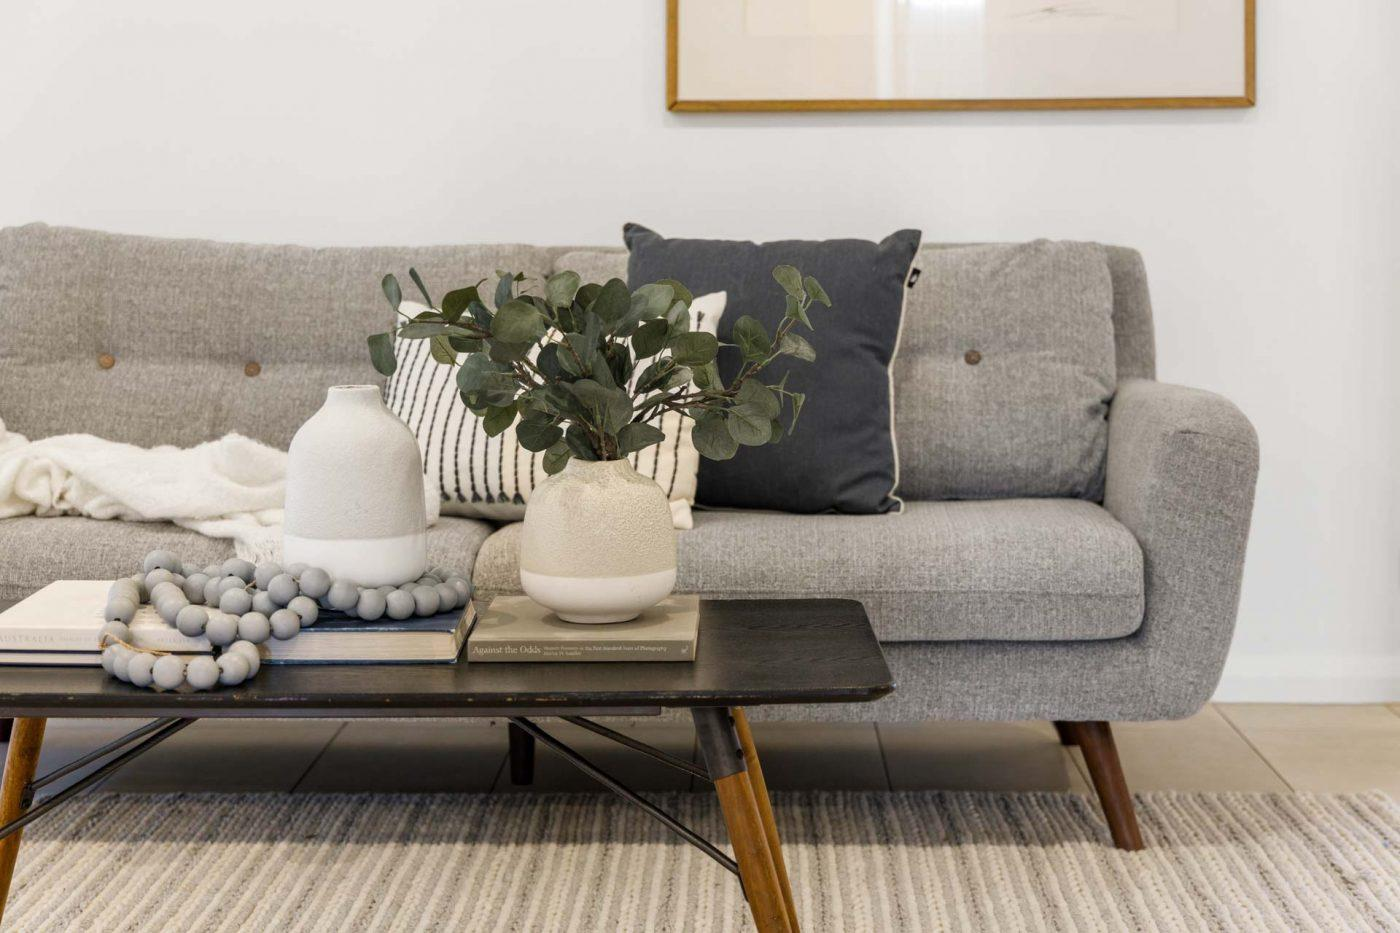 Comfortable Sofa with Classy Table